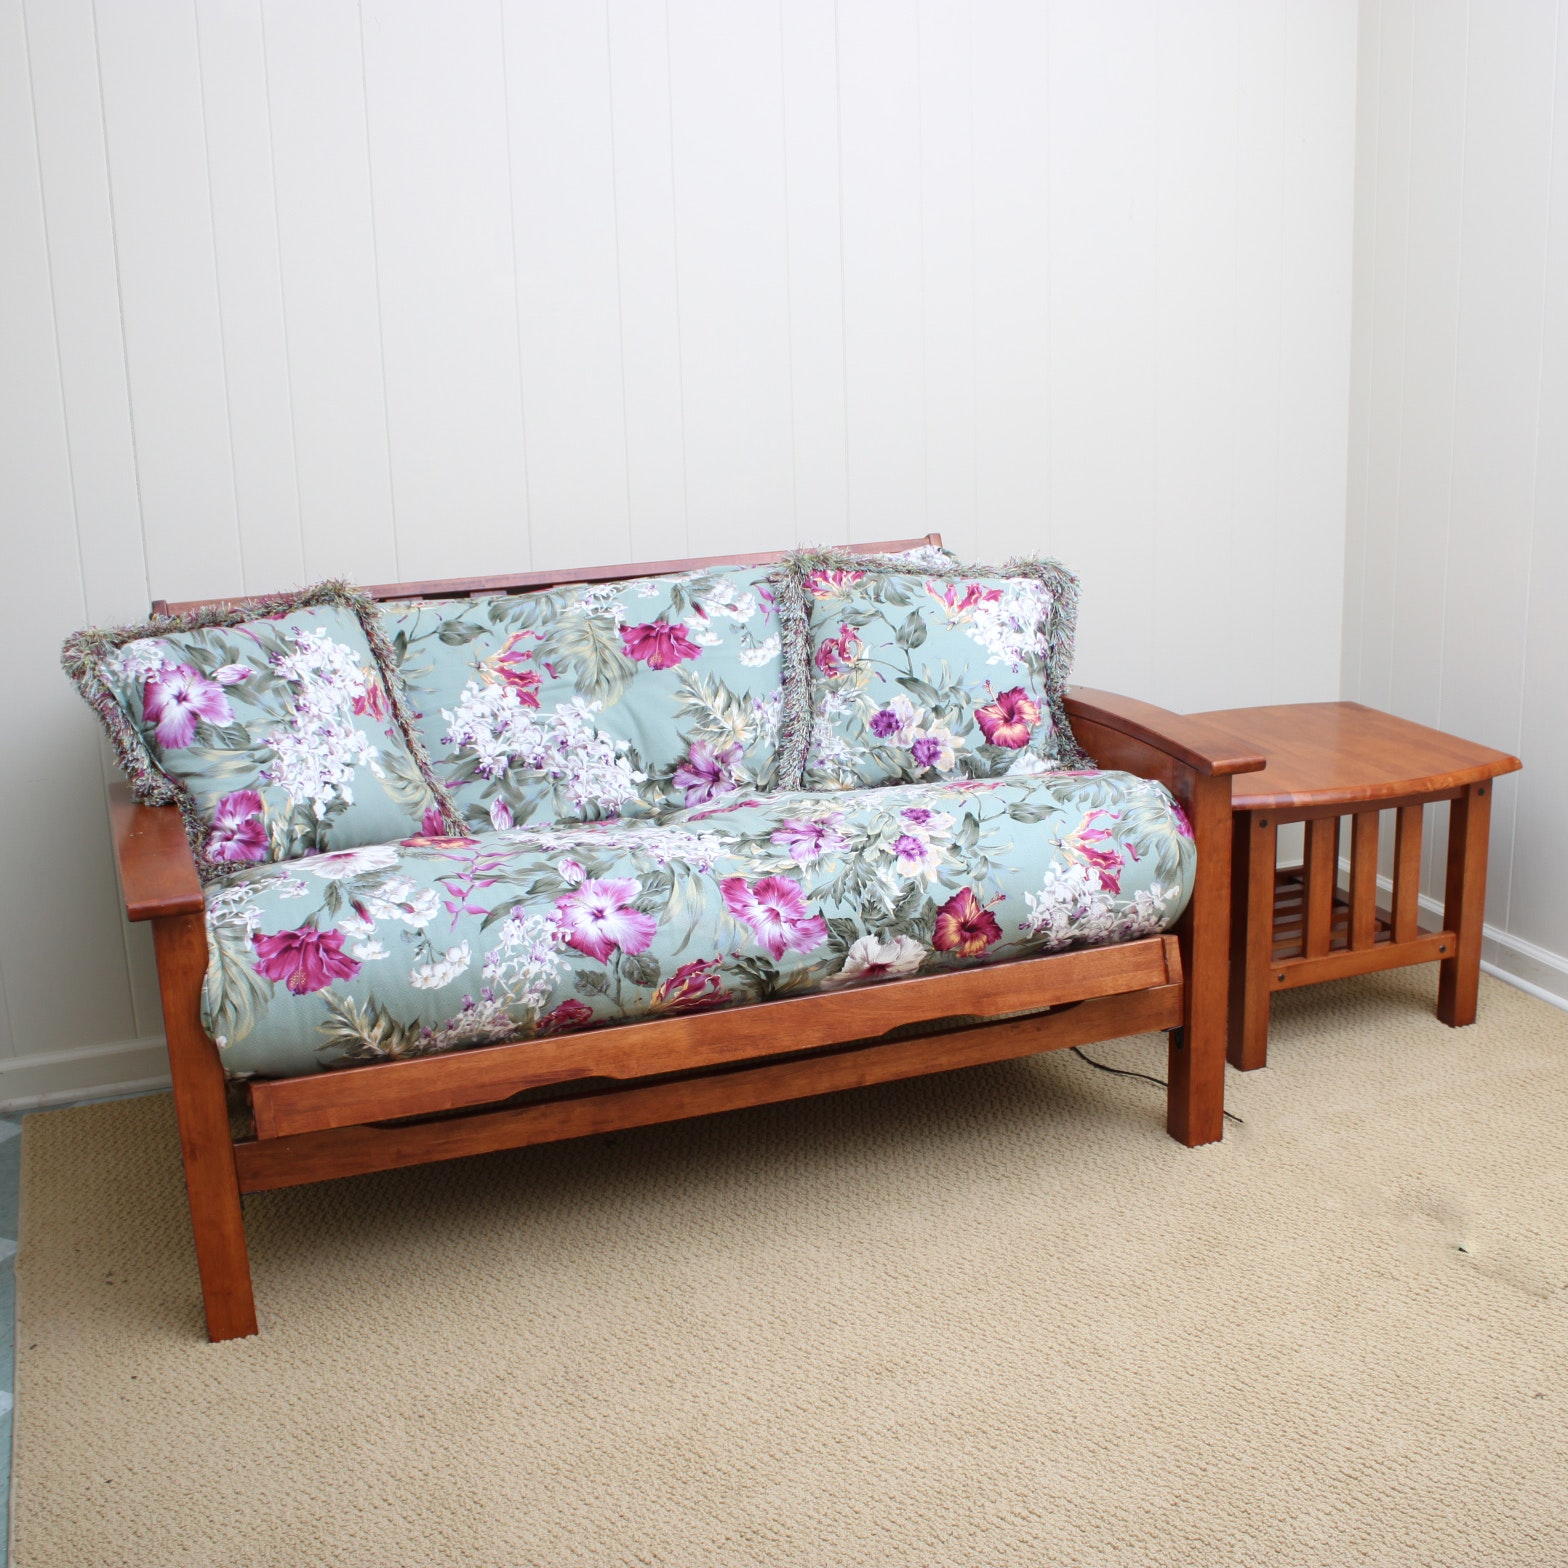 Contemporary Mission Style Futon and Side Table